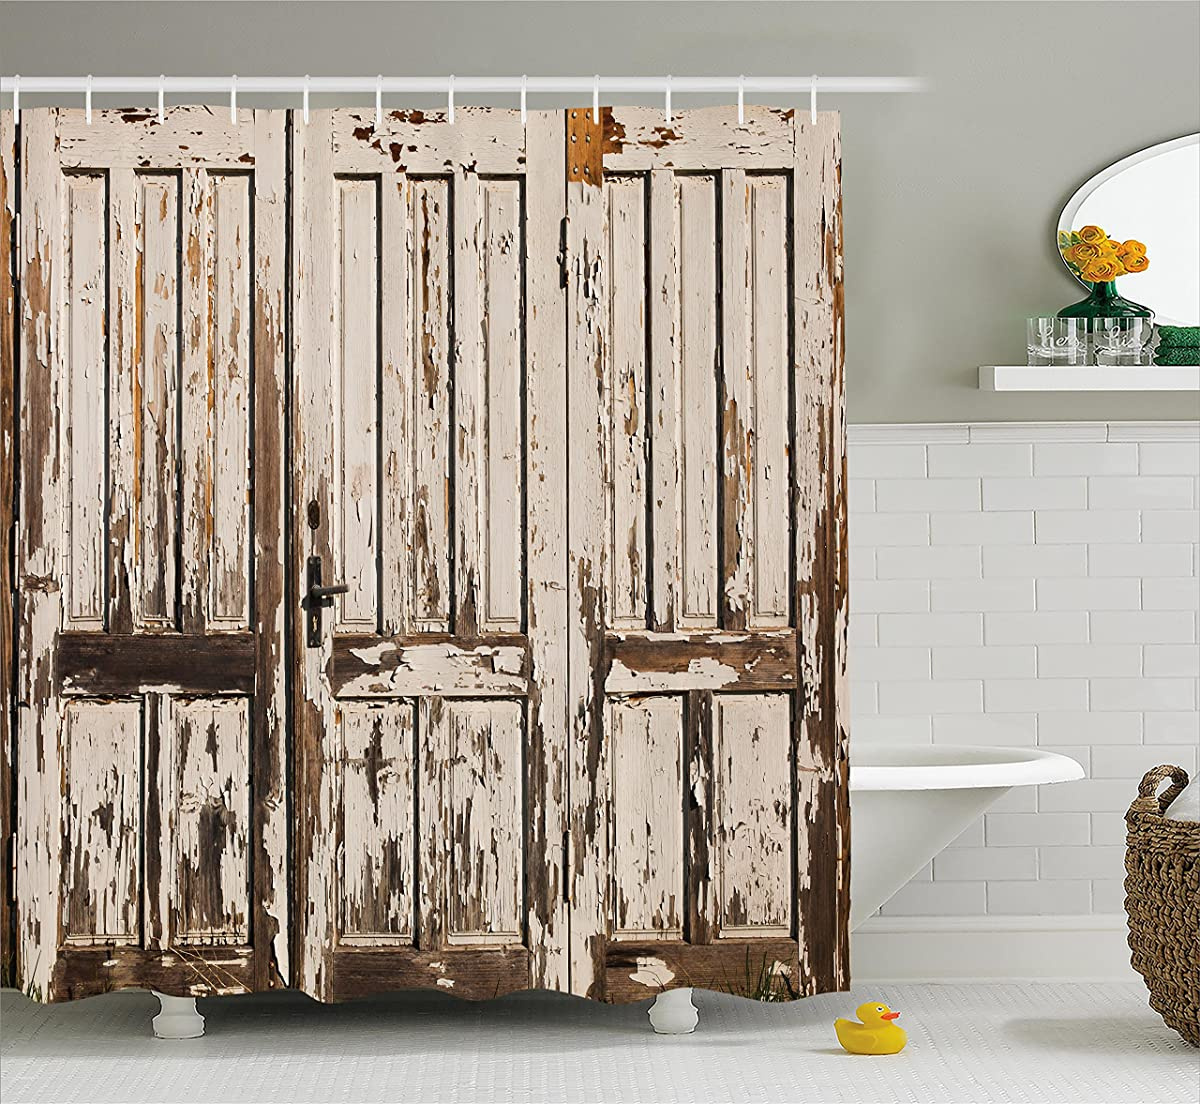 Rustic Shower Curtain by Ambesonne, Vintage House Entrance with Vertical Lined Old Planks Distressed Hardwood Design, Fabric Bathroom Decor Set with Hooks, 75 Inches Long, Beige Brown